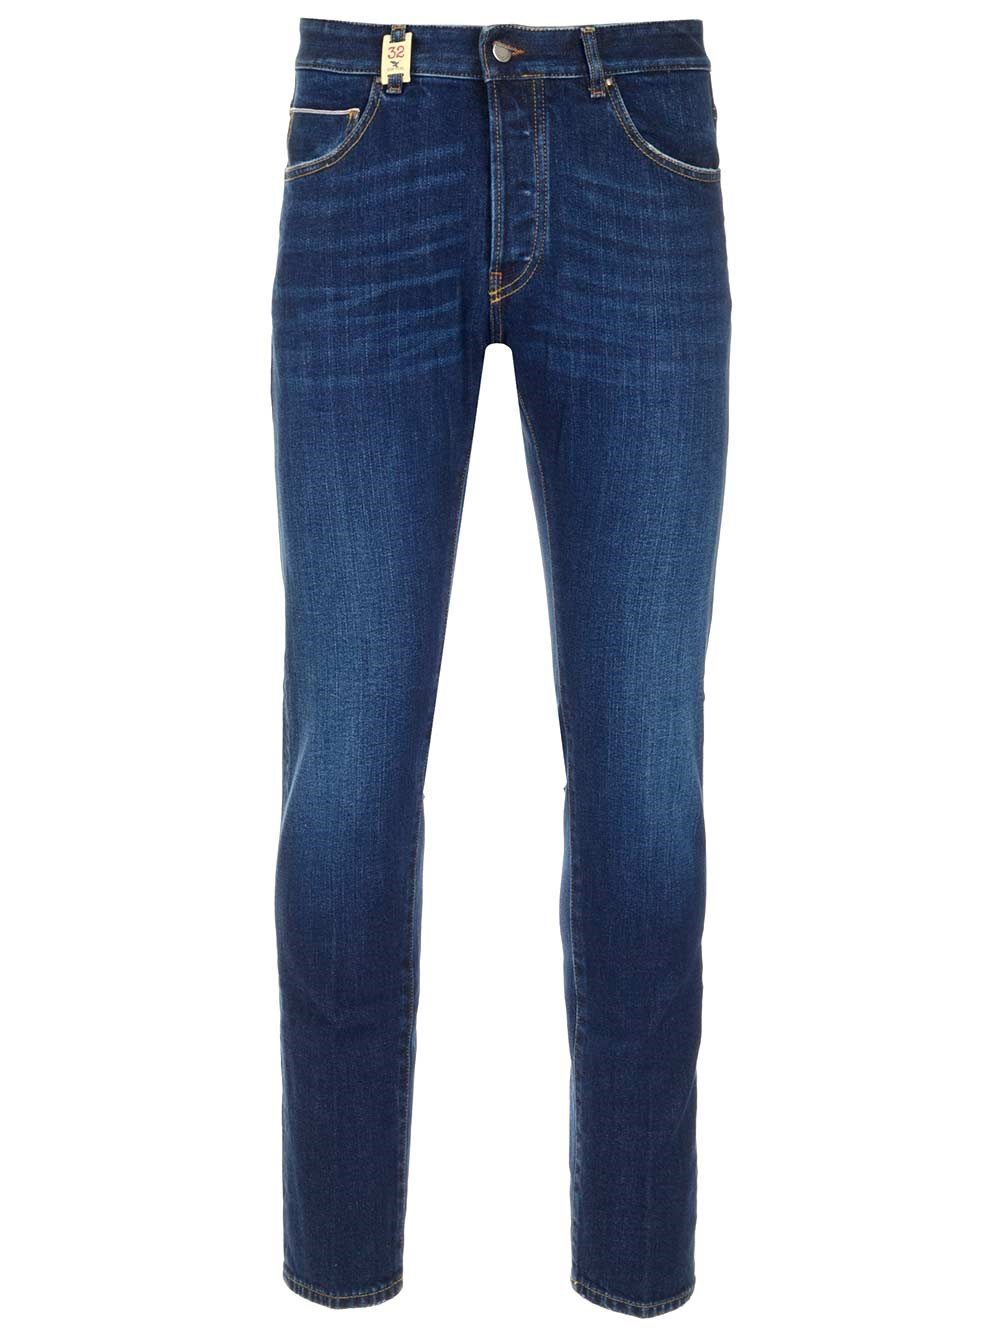 BARMAS Japanese Denim Jeans